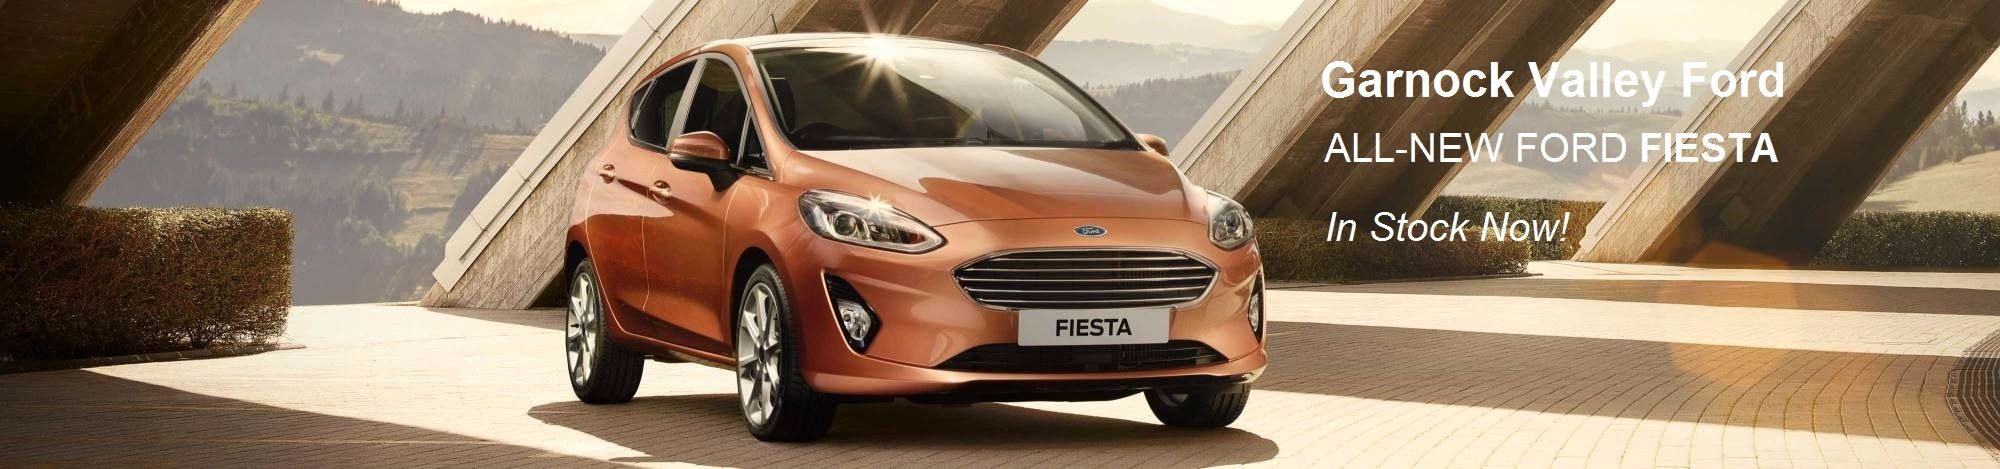 All New Fiesta Advert